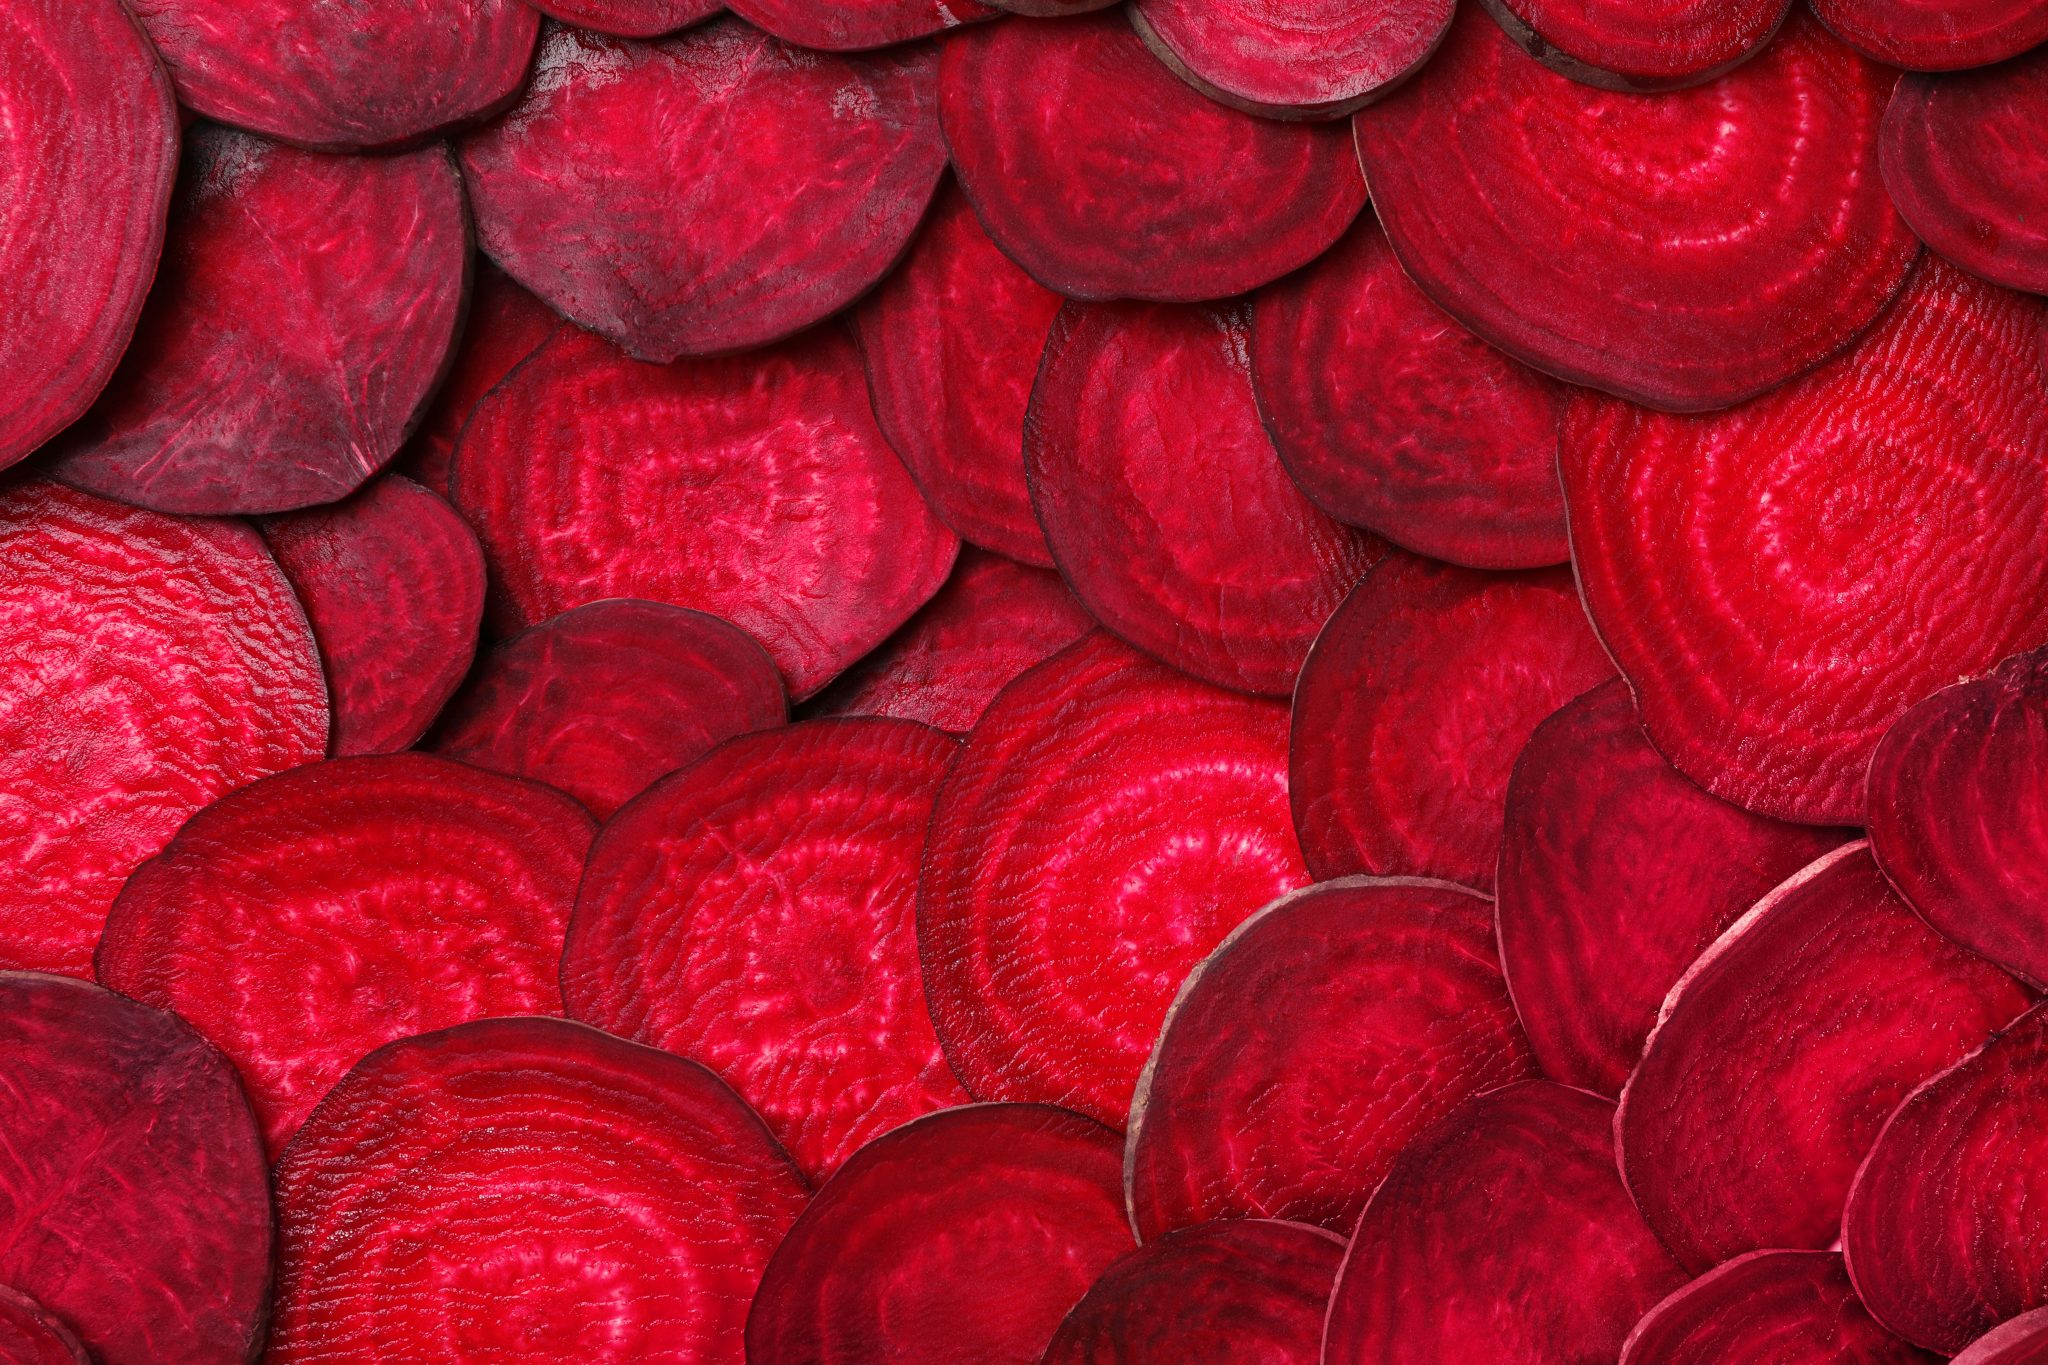 How Long Do Beets Last? Can They Go Bad?